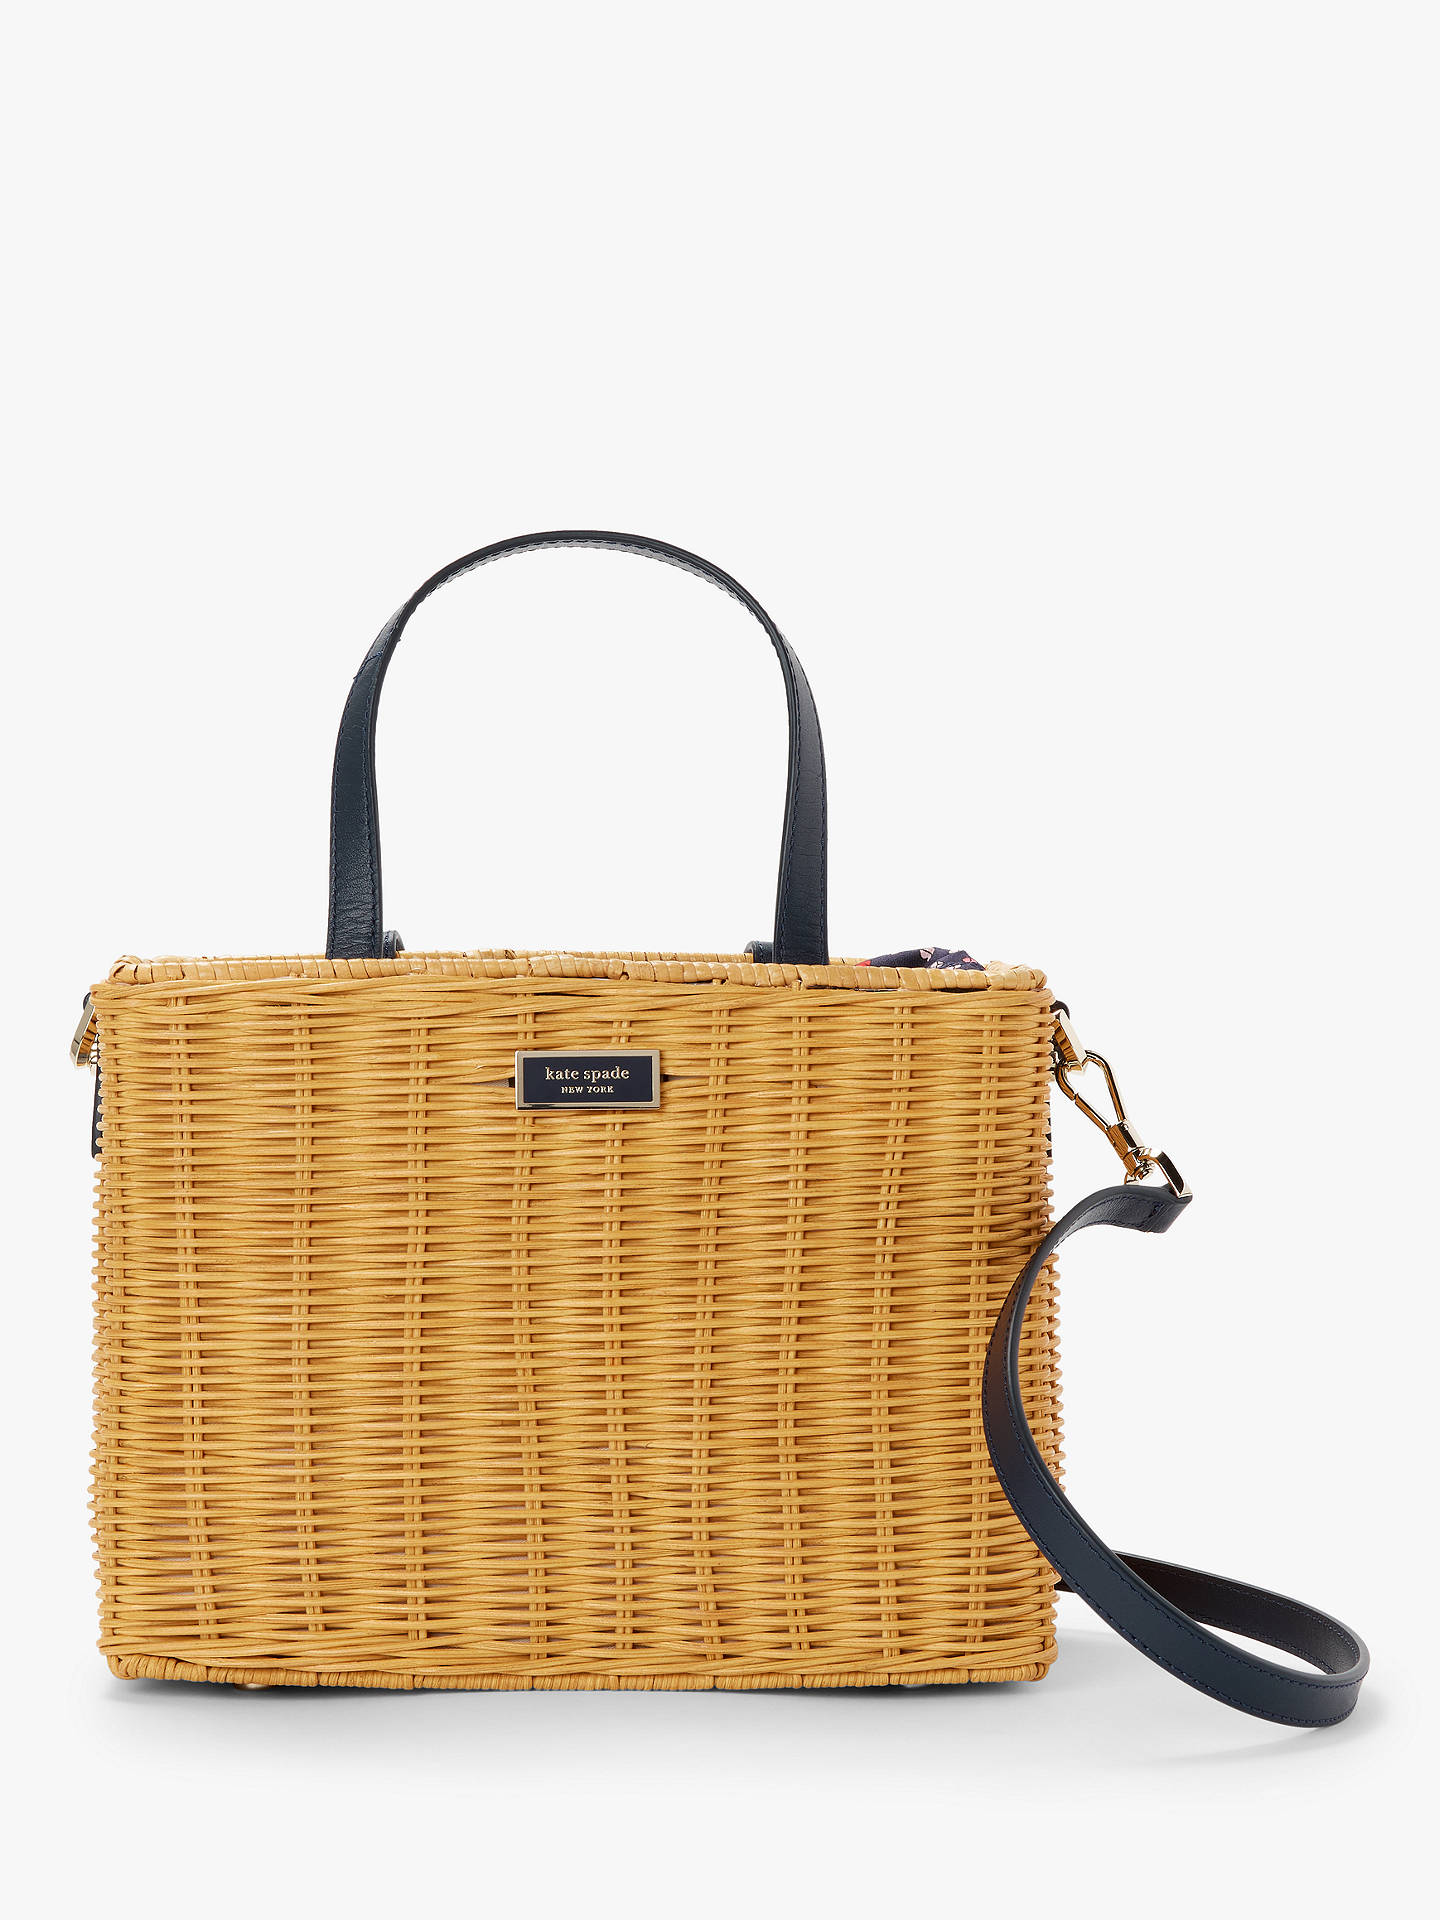 296704c5bab kate spade new york Sam Medium Wicker Basket Bag, Natural/Navy